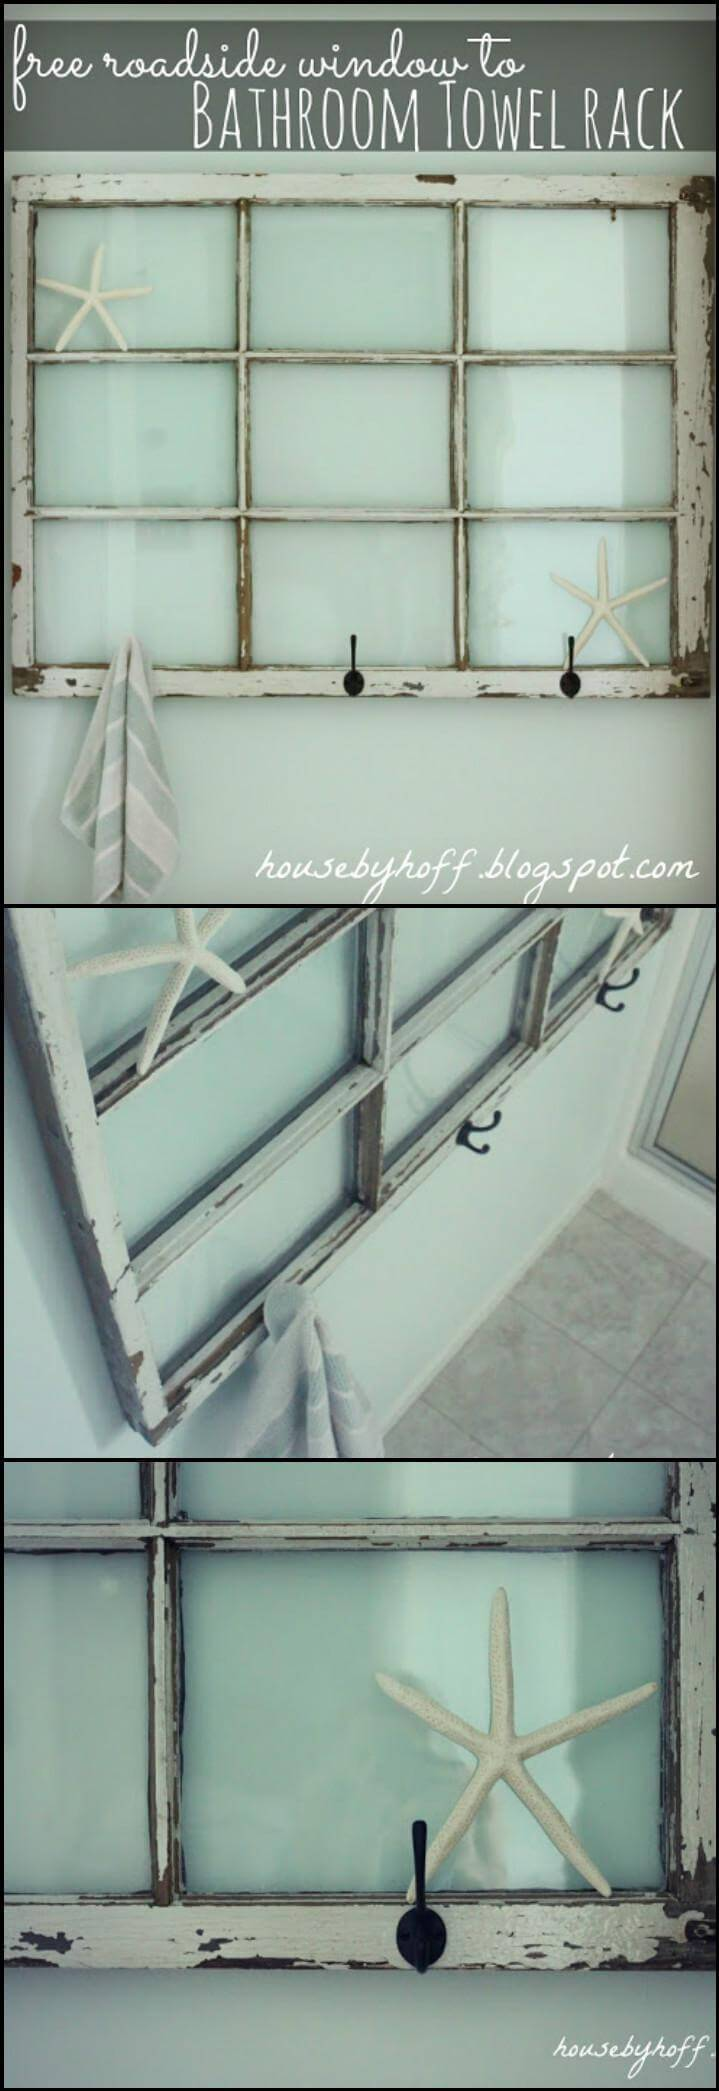 repurposed antique roadside window bathroom towel rack